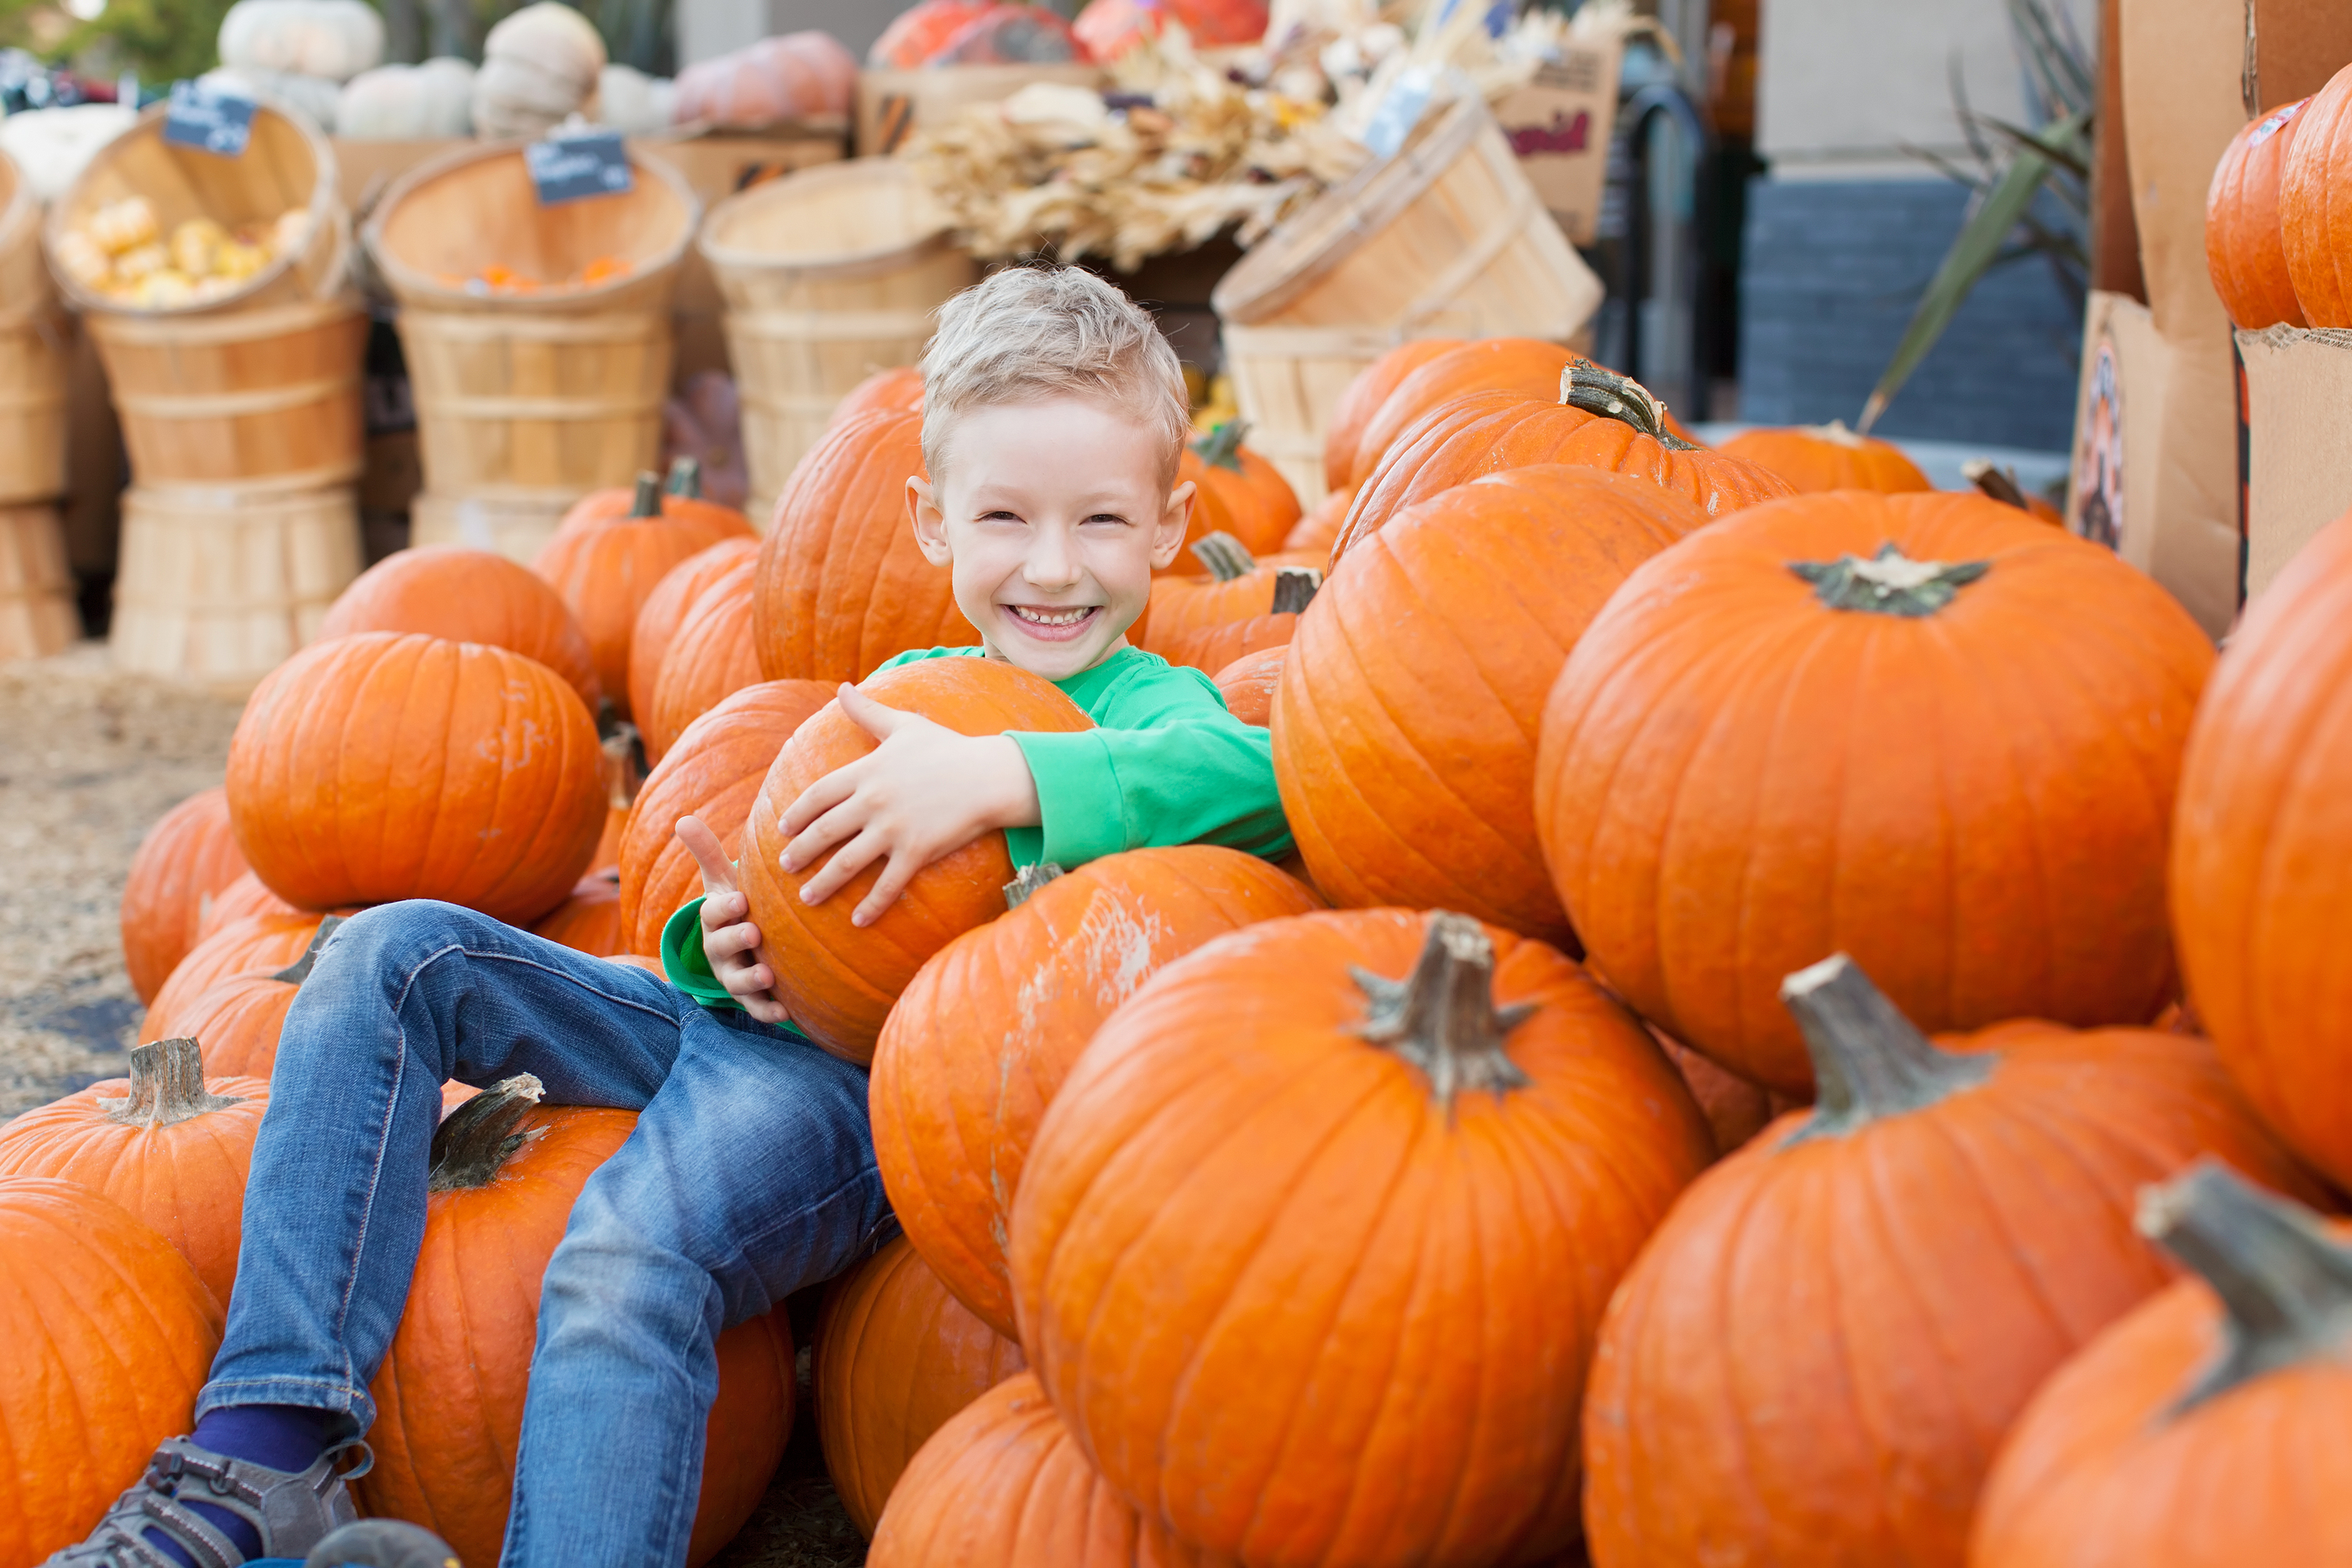 boy sitting among pumpkins in fall